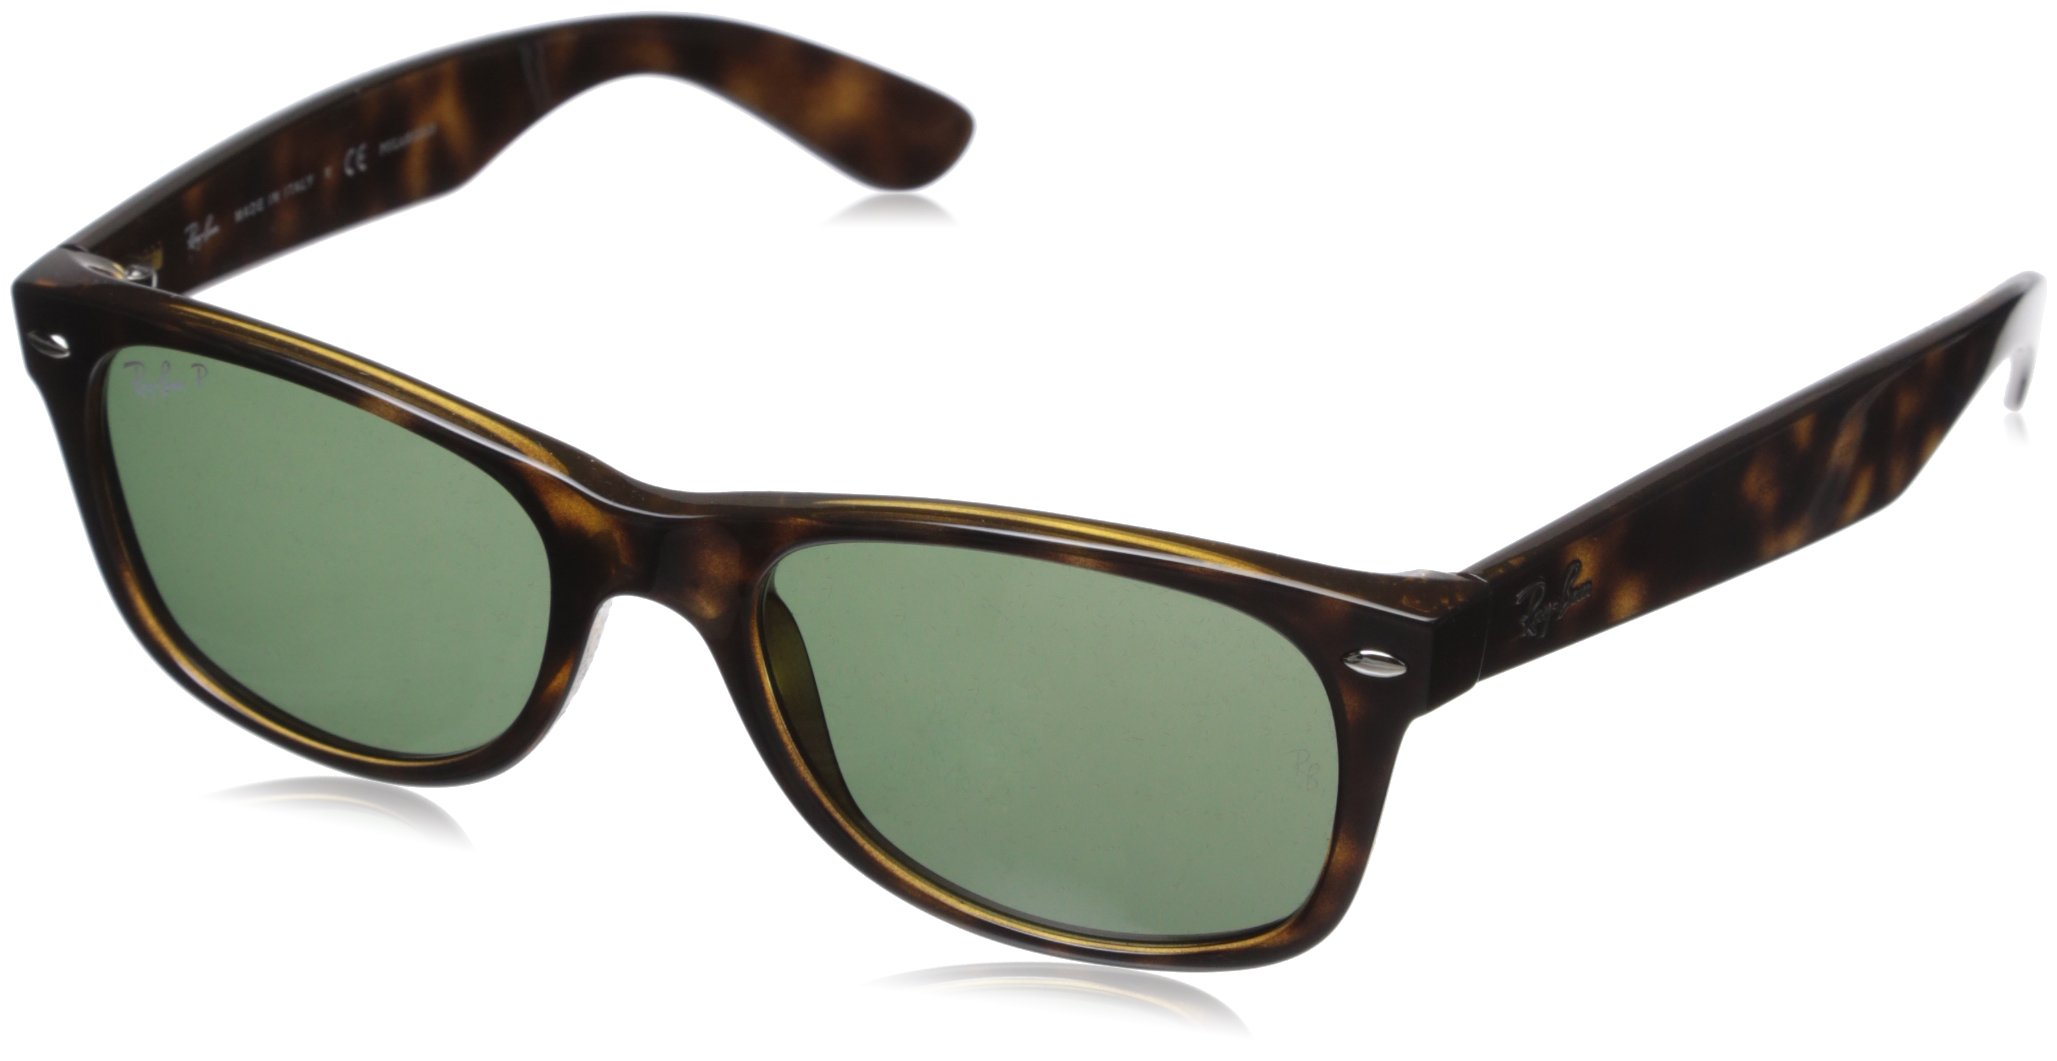 Ray-Ban rb2132 Unisex New Wayfarer Polarized Sunglasses, Tortoise/Crystal Green, 55mm